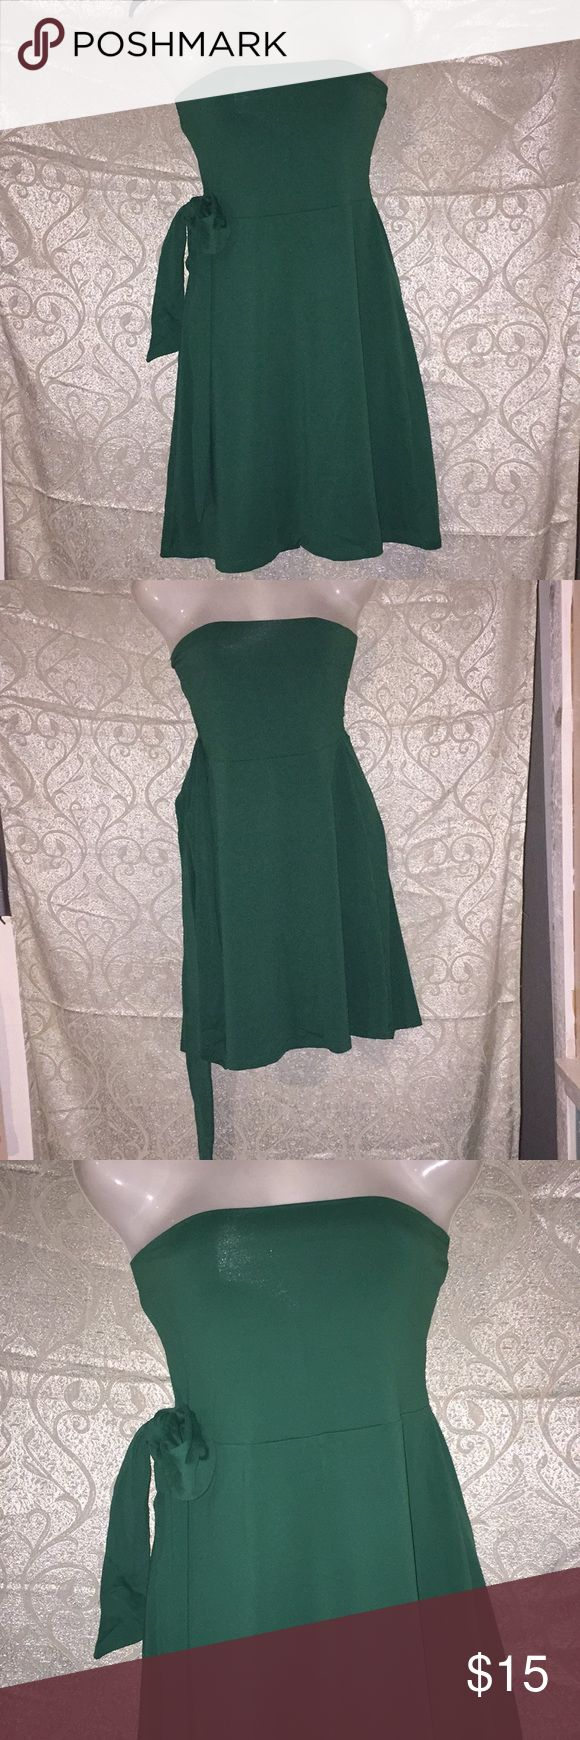 Susana Monaco Green Spring Dress Susana Monaco Green Spring Dress 👗 in brand new conditions, perfect for a girls night out. Fits up to a size Medium. Susana Monaco Dresses Midi